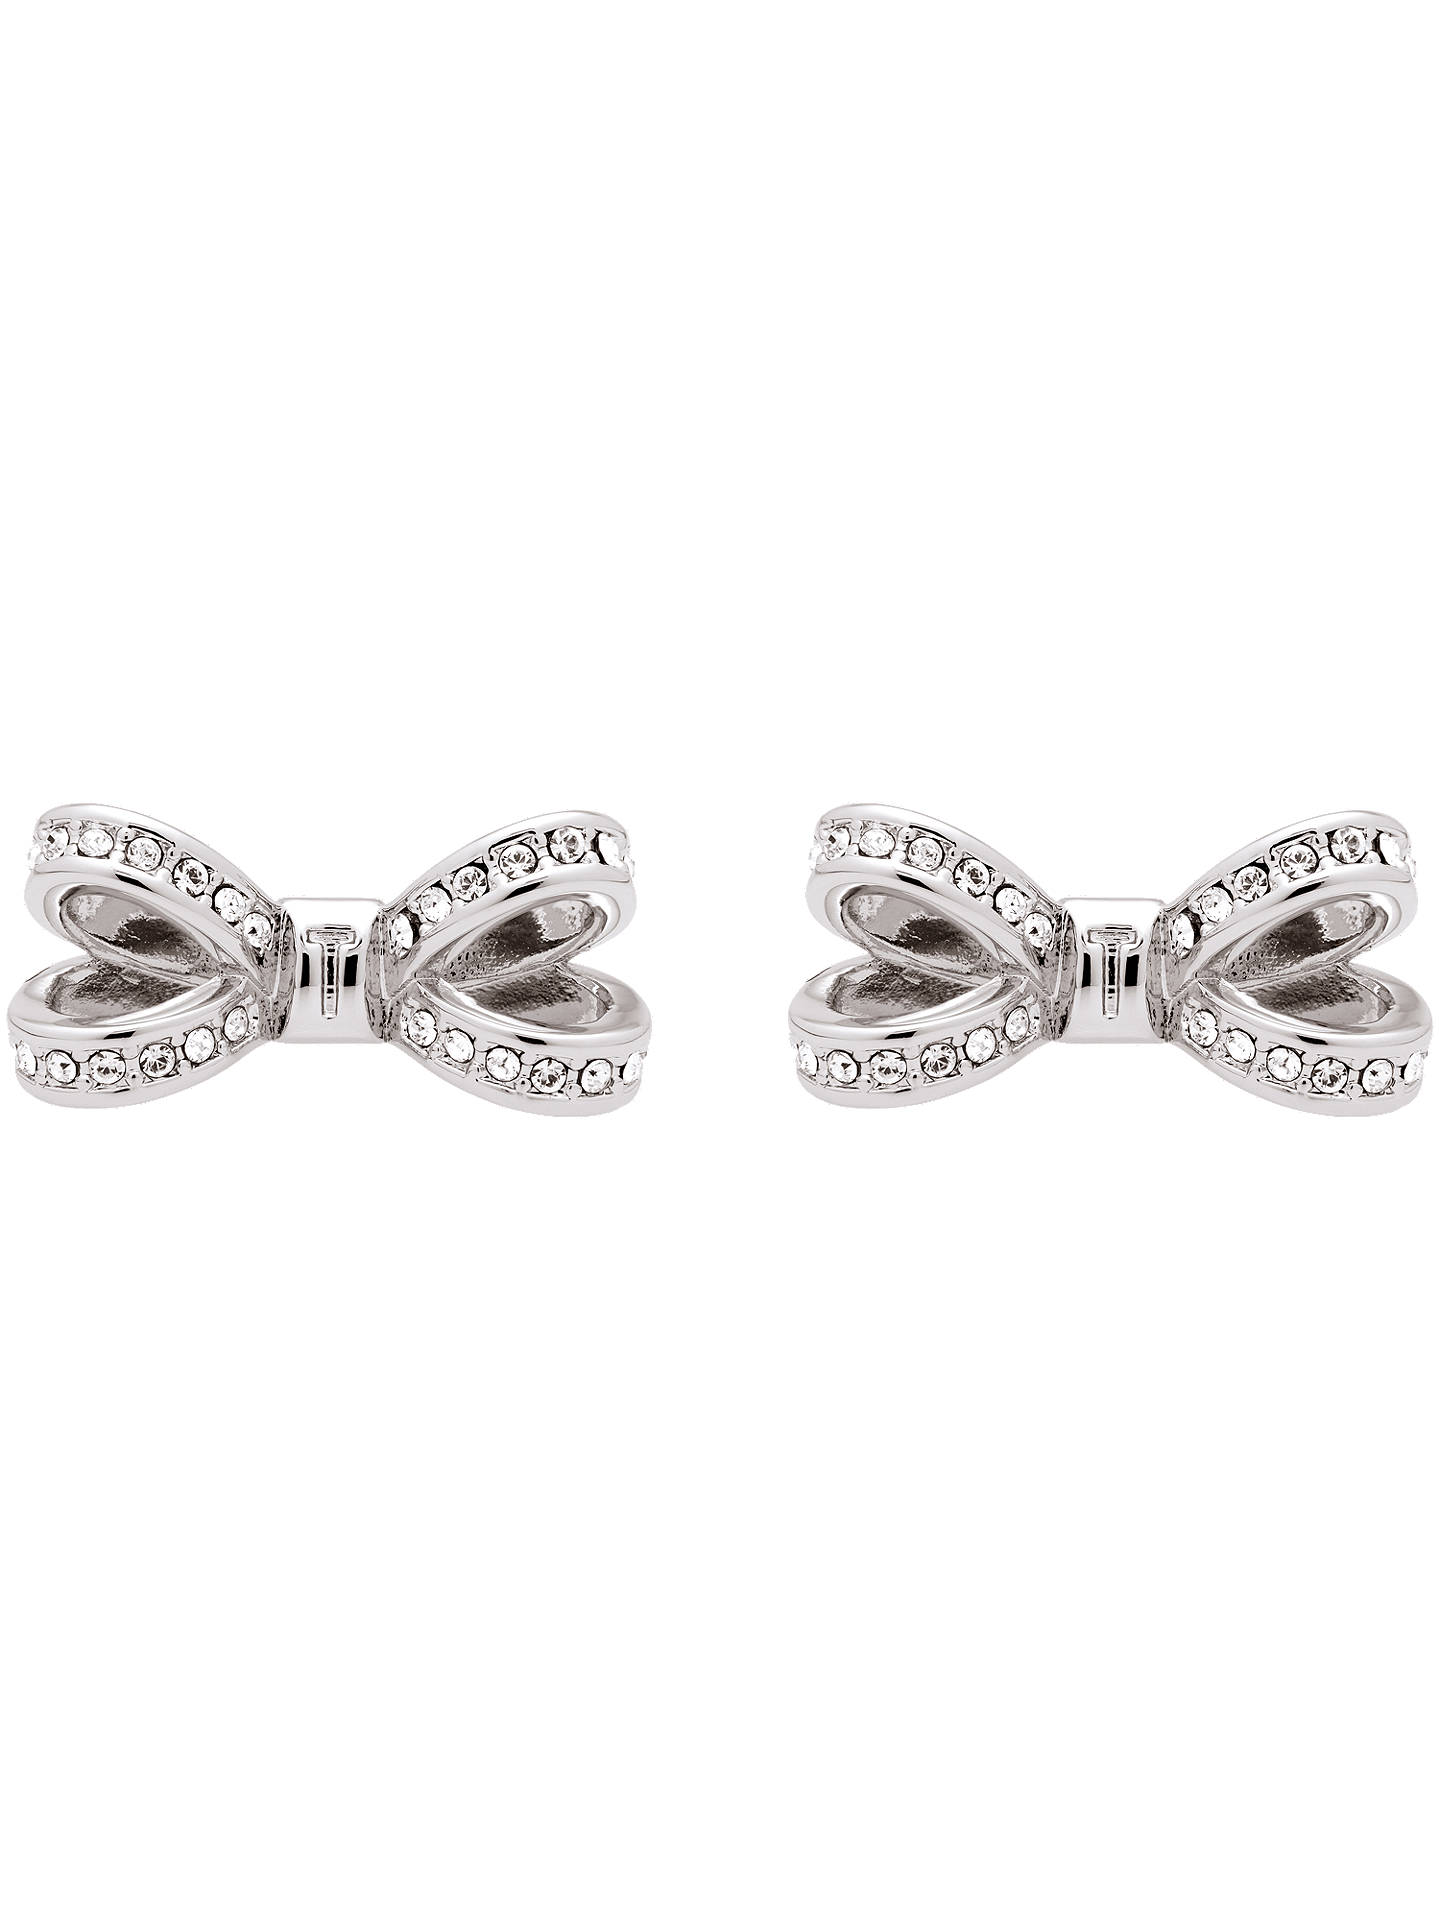 Ted Baker Olitta Mini Pave Swarovski Crystal Bow Stud Earrings Silver Online At Johnlewis